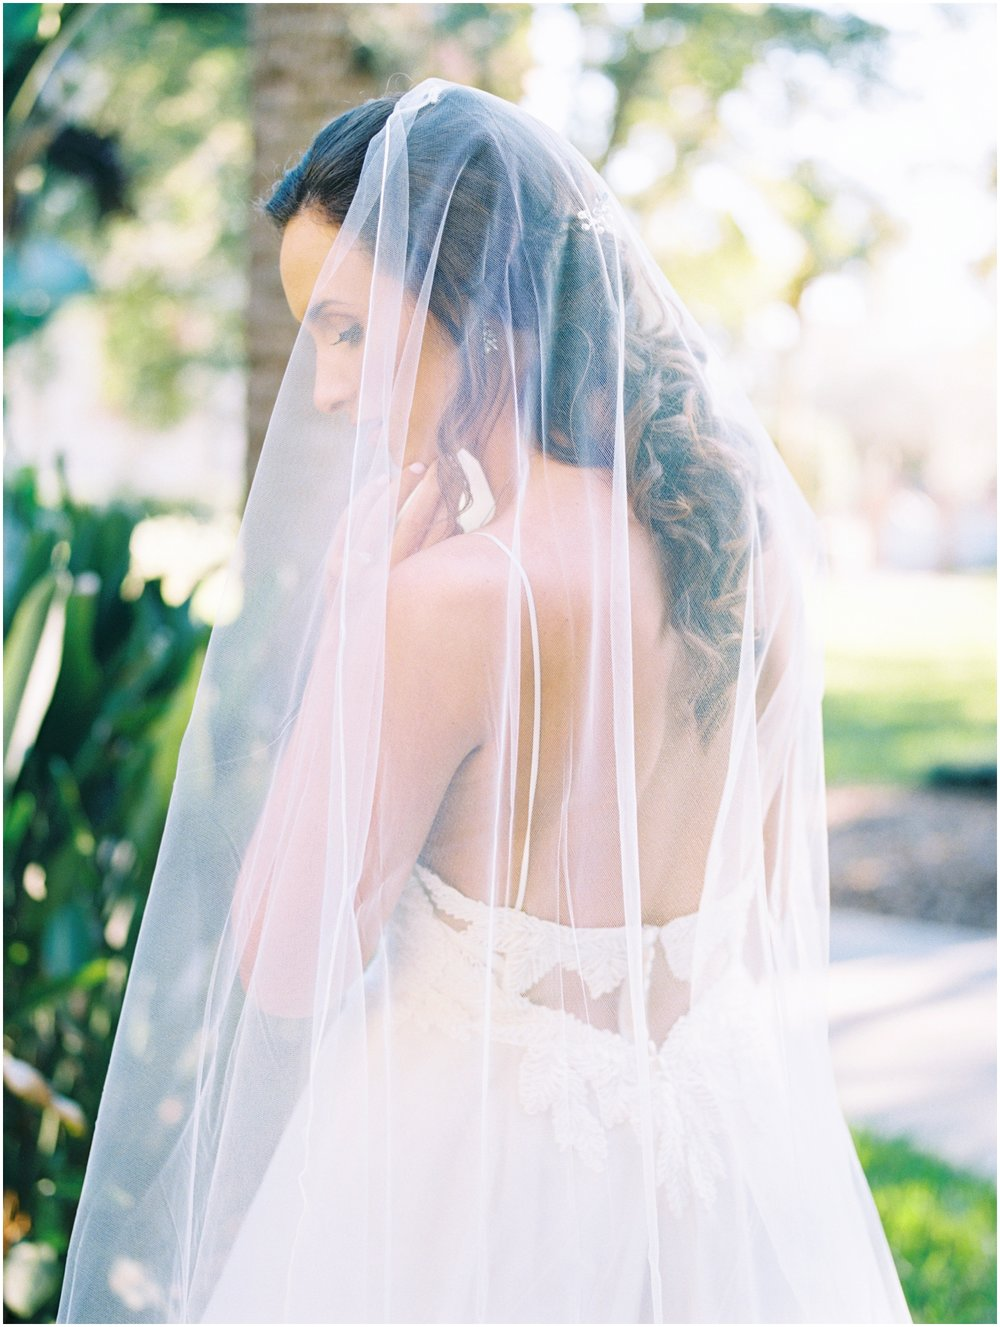 Lisa Silva Photography -Bridal Portrait Session in St. Augustine, Florida- Jacksonville and North East Florida Fine Art Film Photographer_0011.jpg